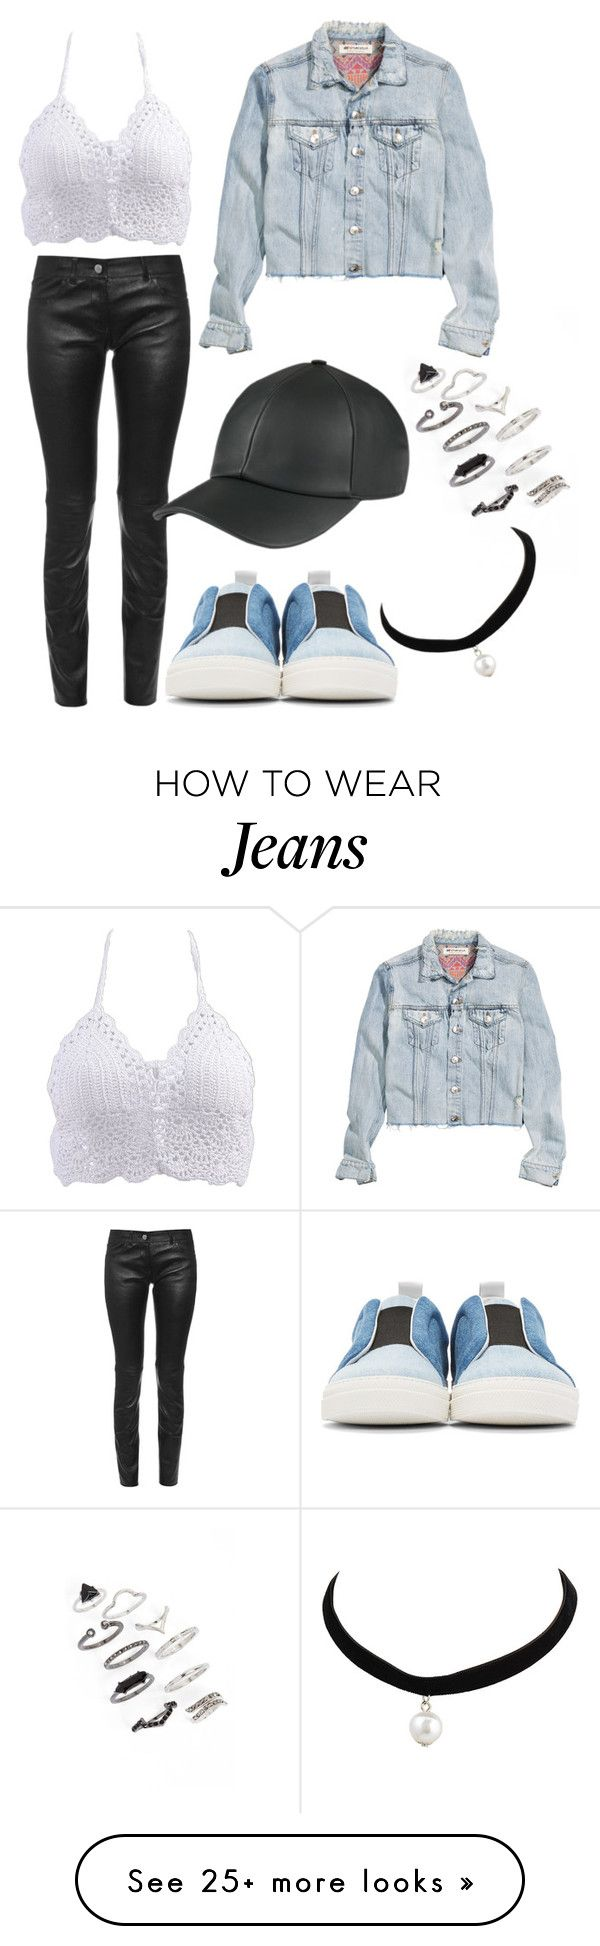 """""""Rock it jeans&leather"""" by nanouhawz003 on Polyvore featuring Pierre Hardy, Balenciaga, Topshop, H&M, cutecardigan and springlayers"""